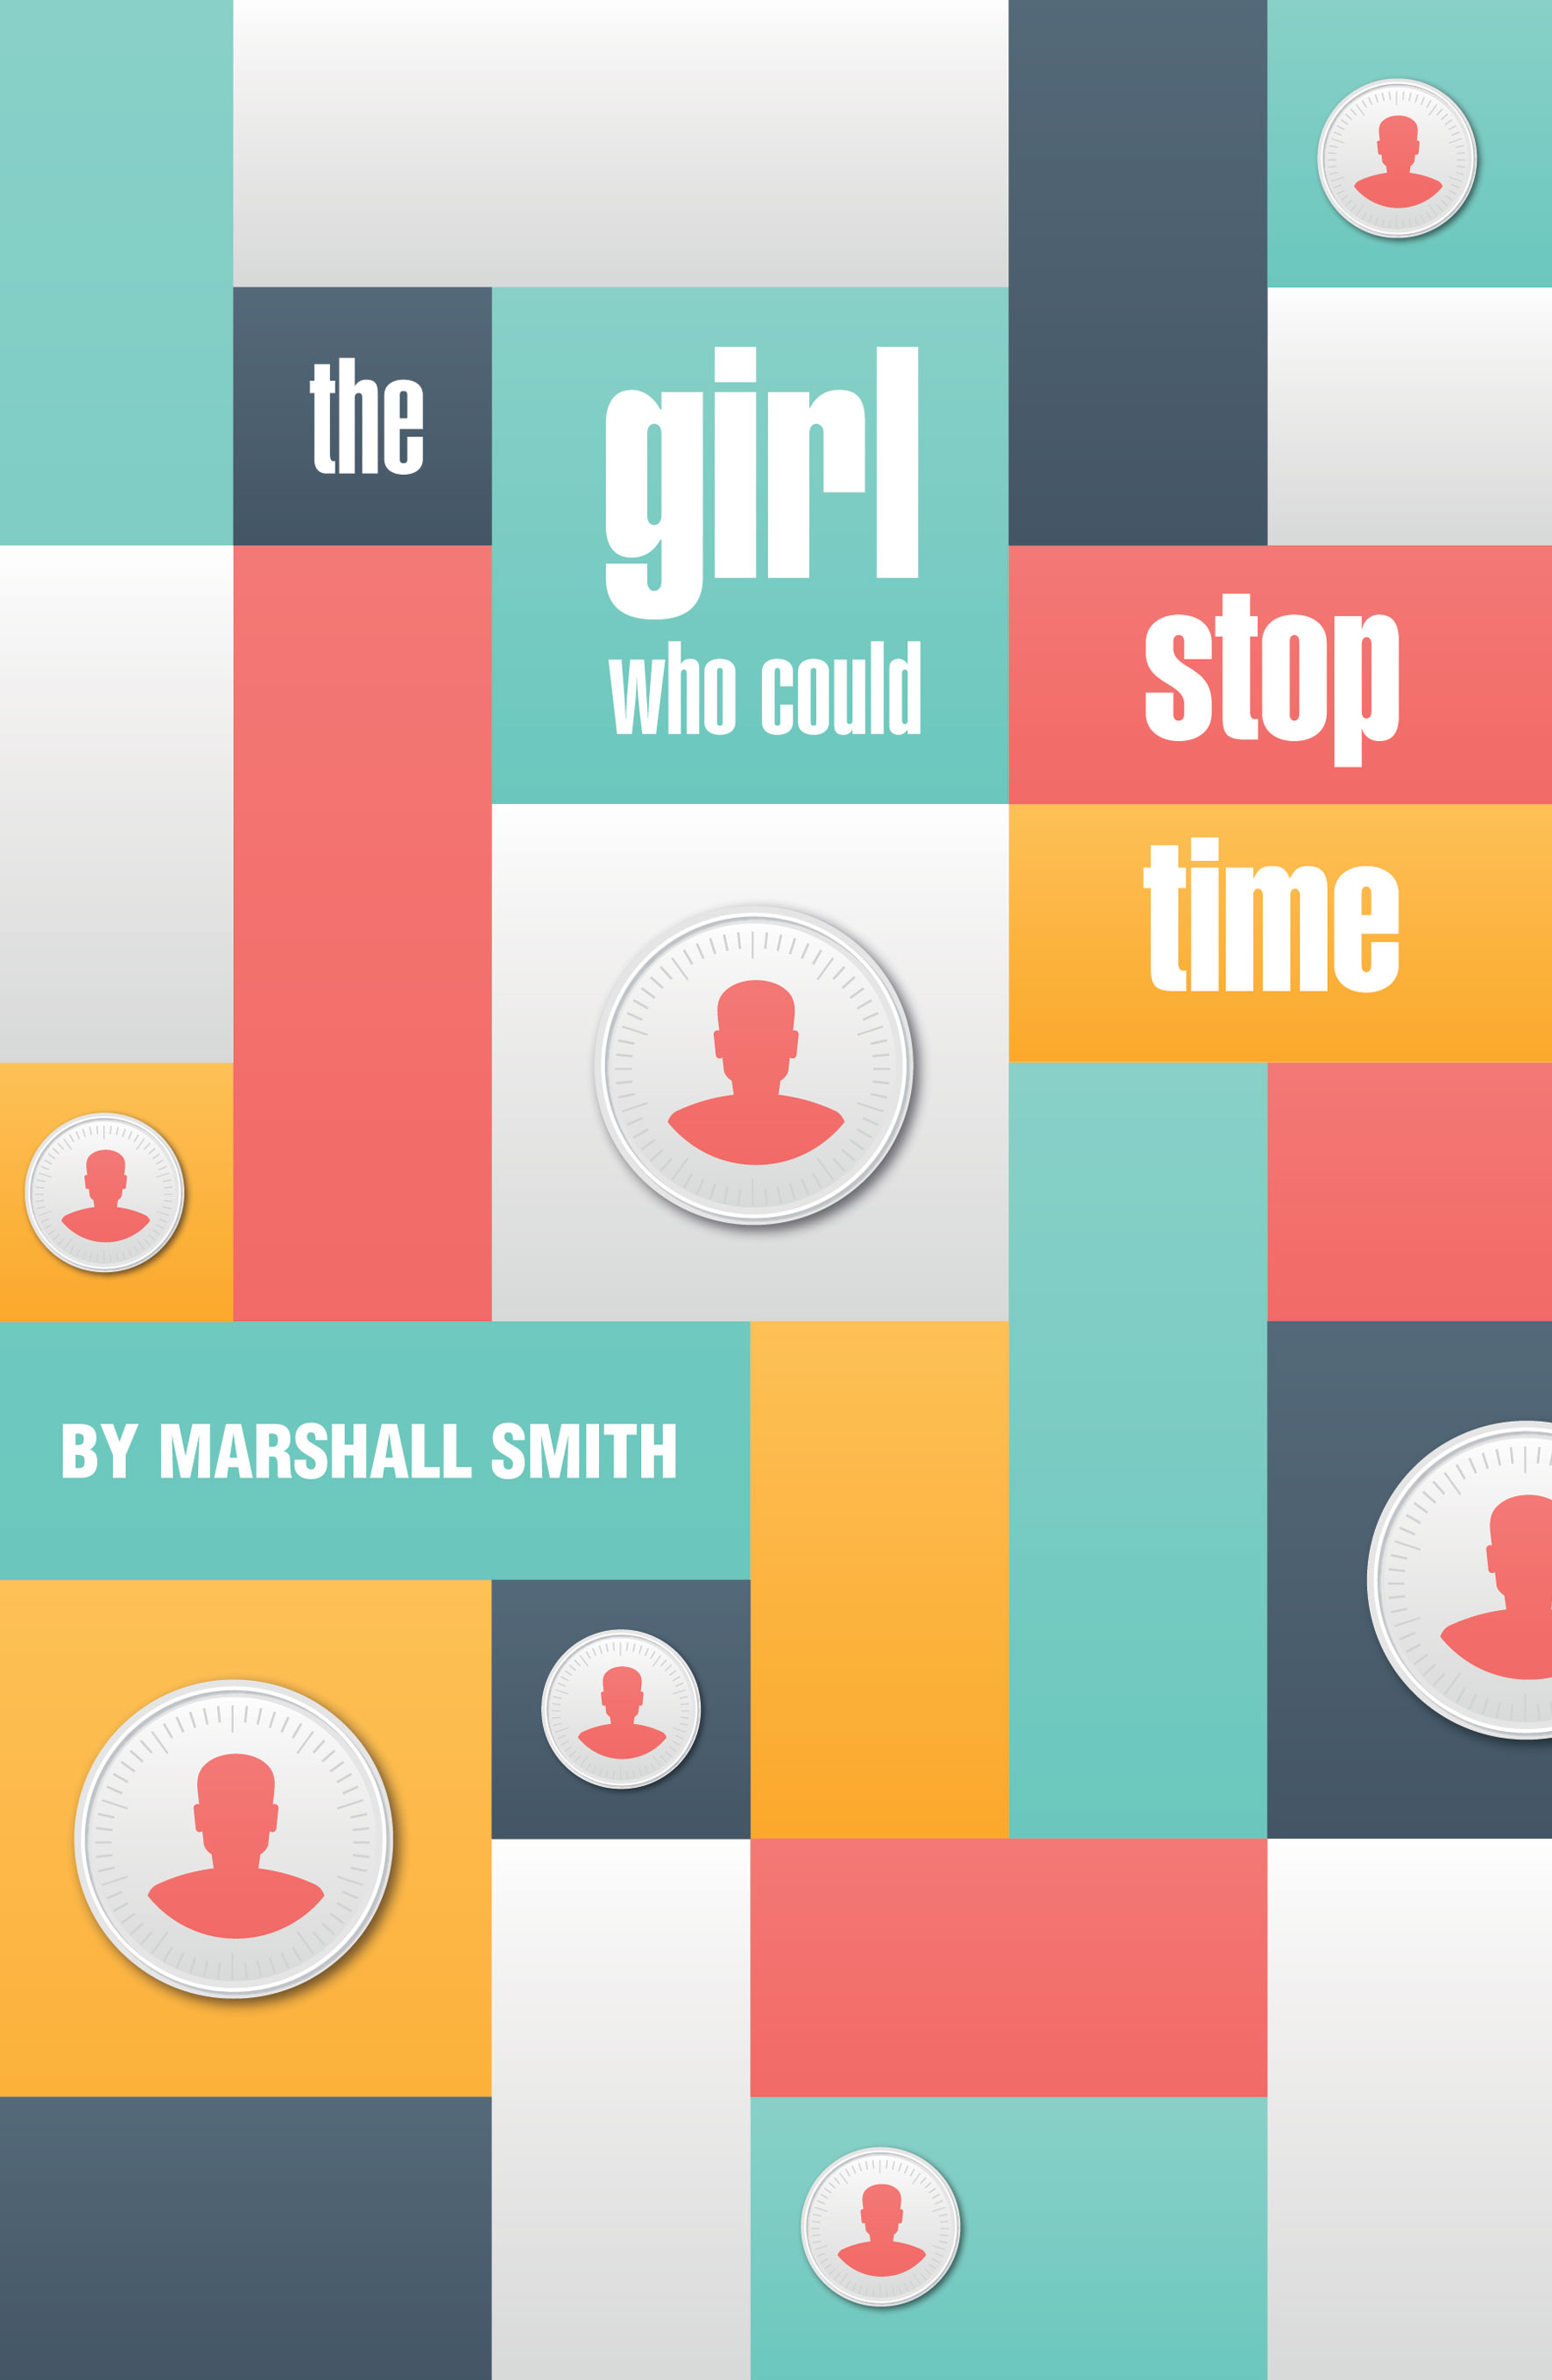 The Girl Who Could Stop Time - By Marshall Smith